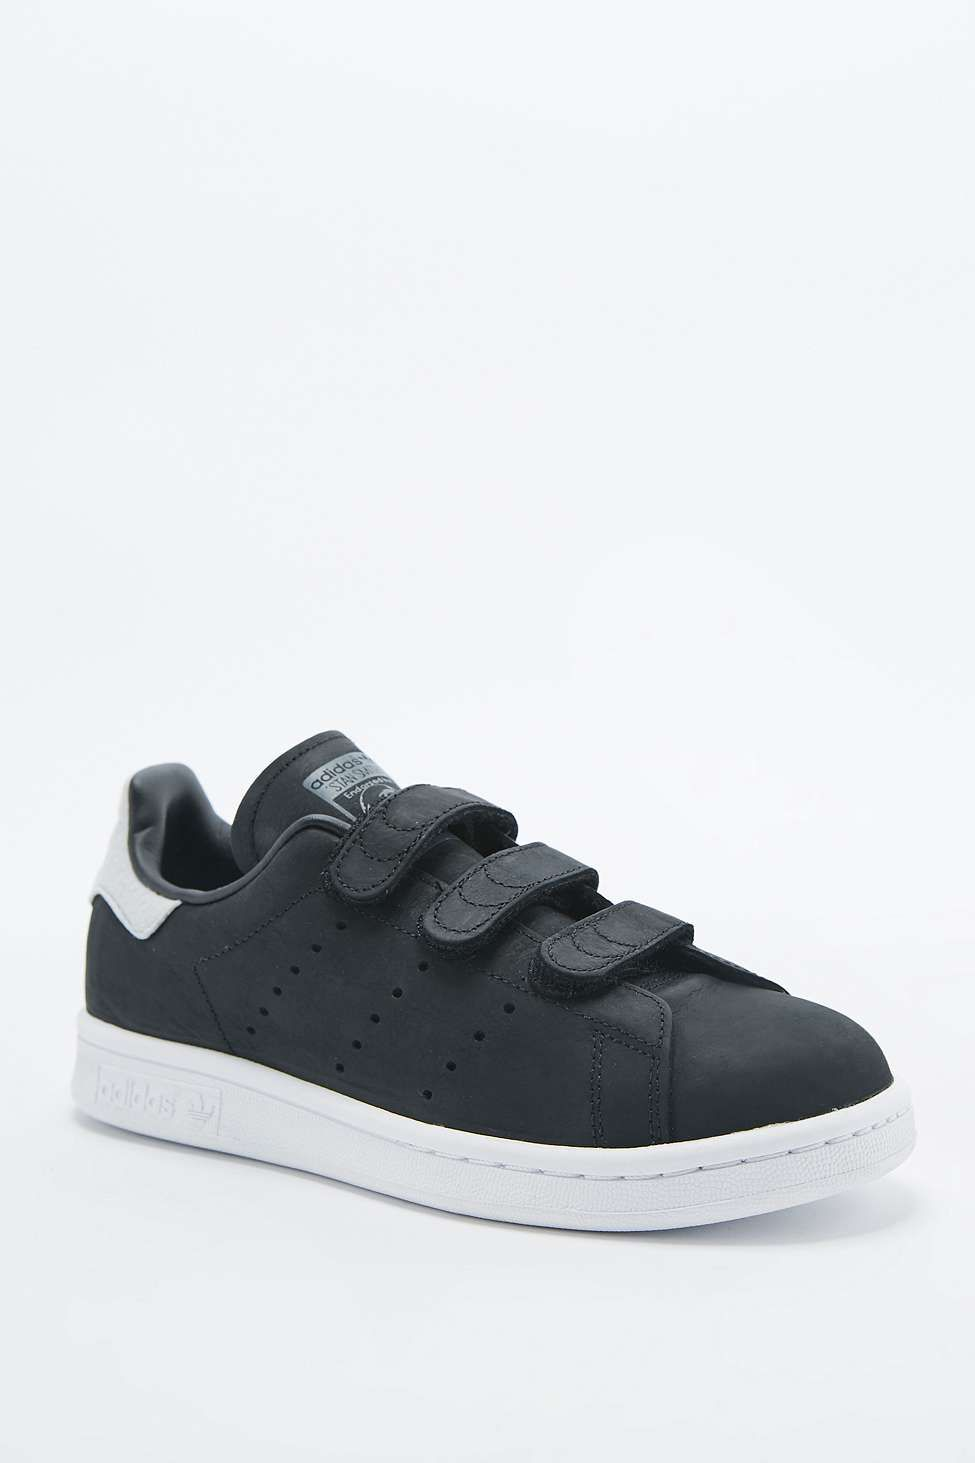 adidas Originals Stan Smith Black Velcro Trainers    3   Pinterest ... a7140035273c